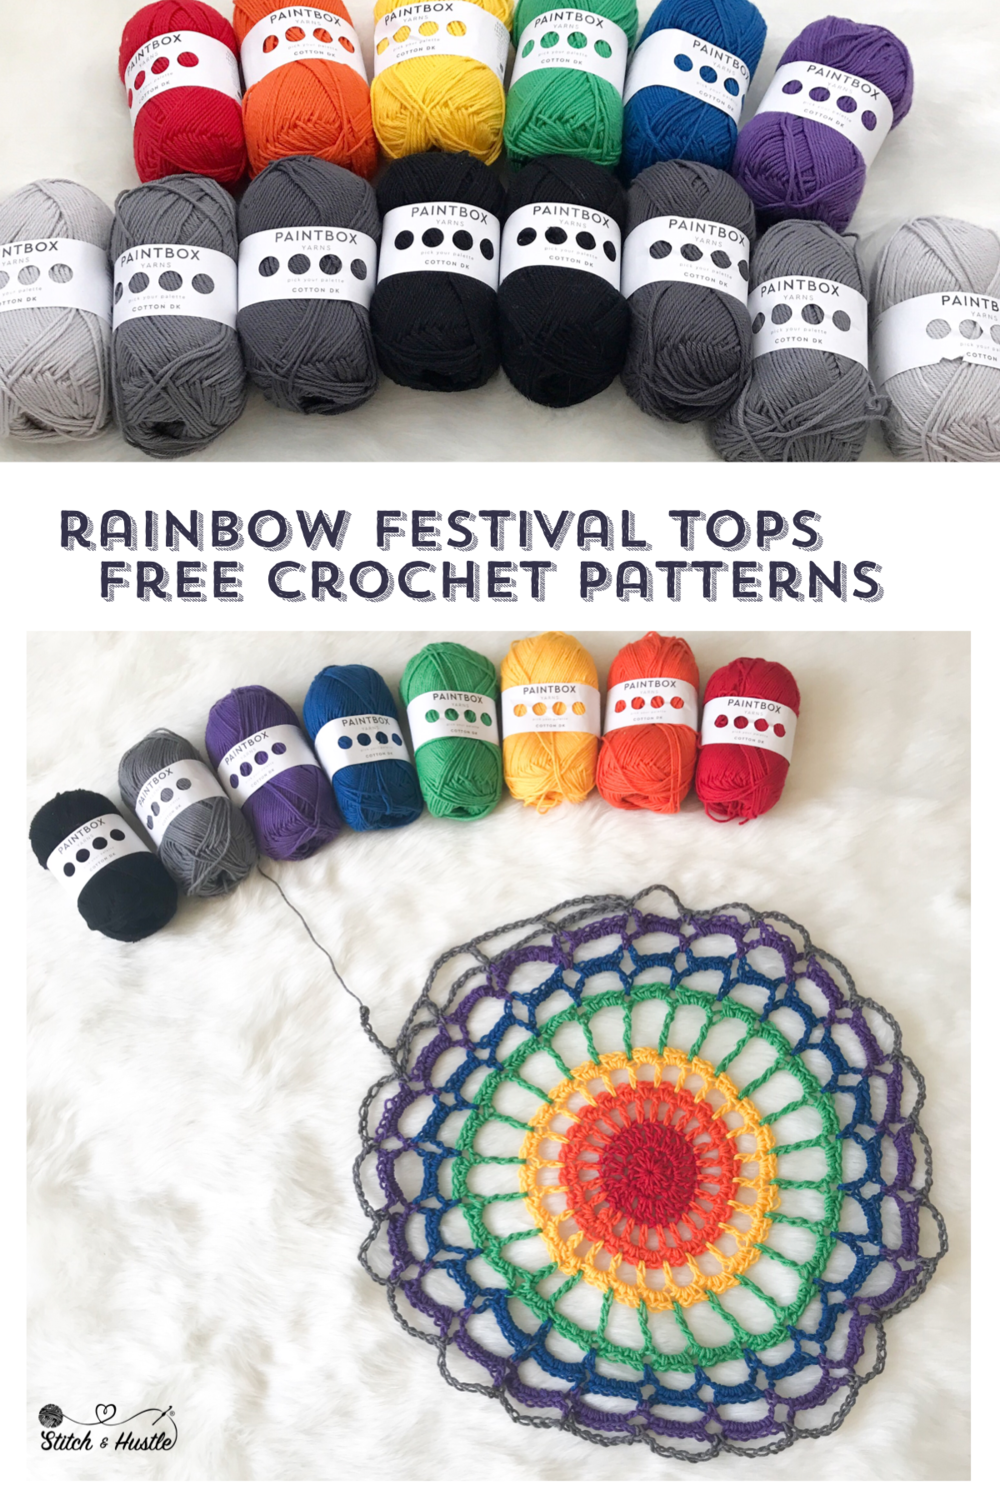 Rainbow-crochet-tops-free-patterns-2.png